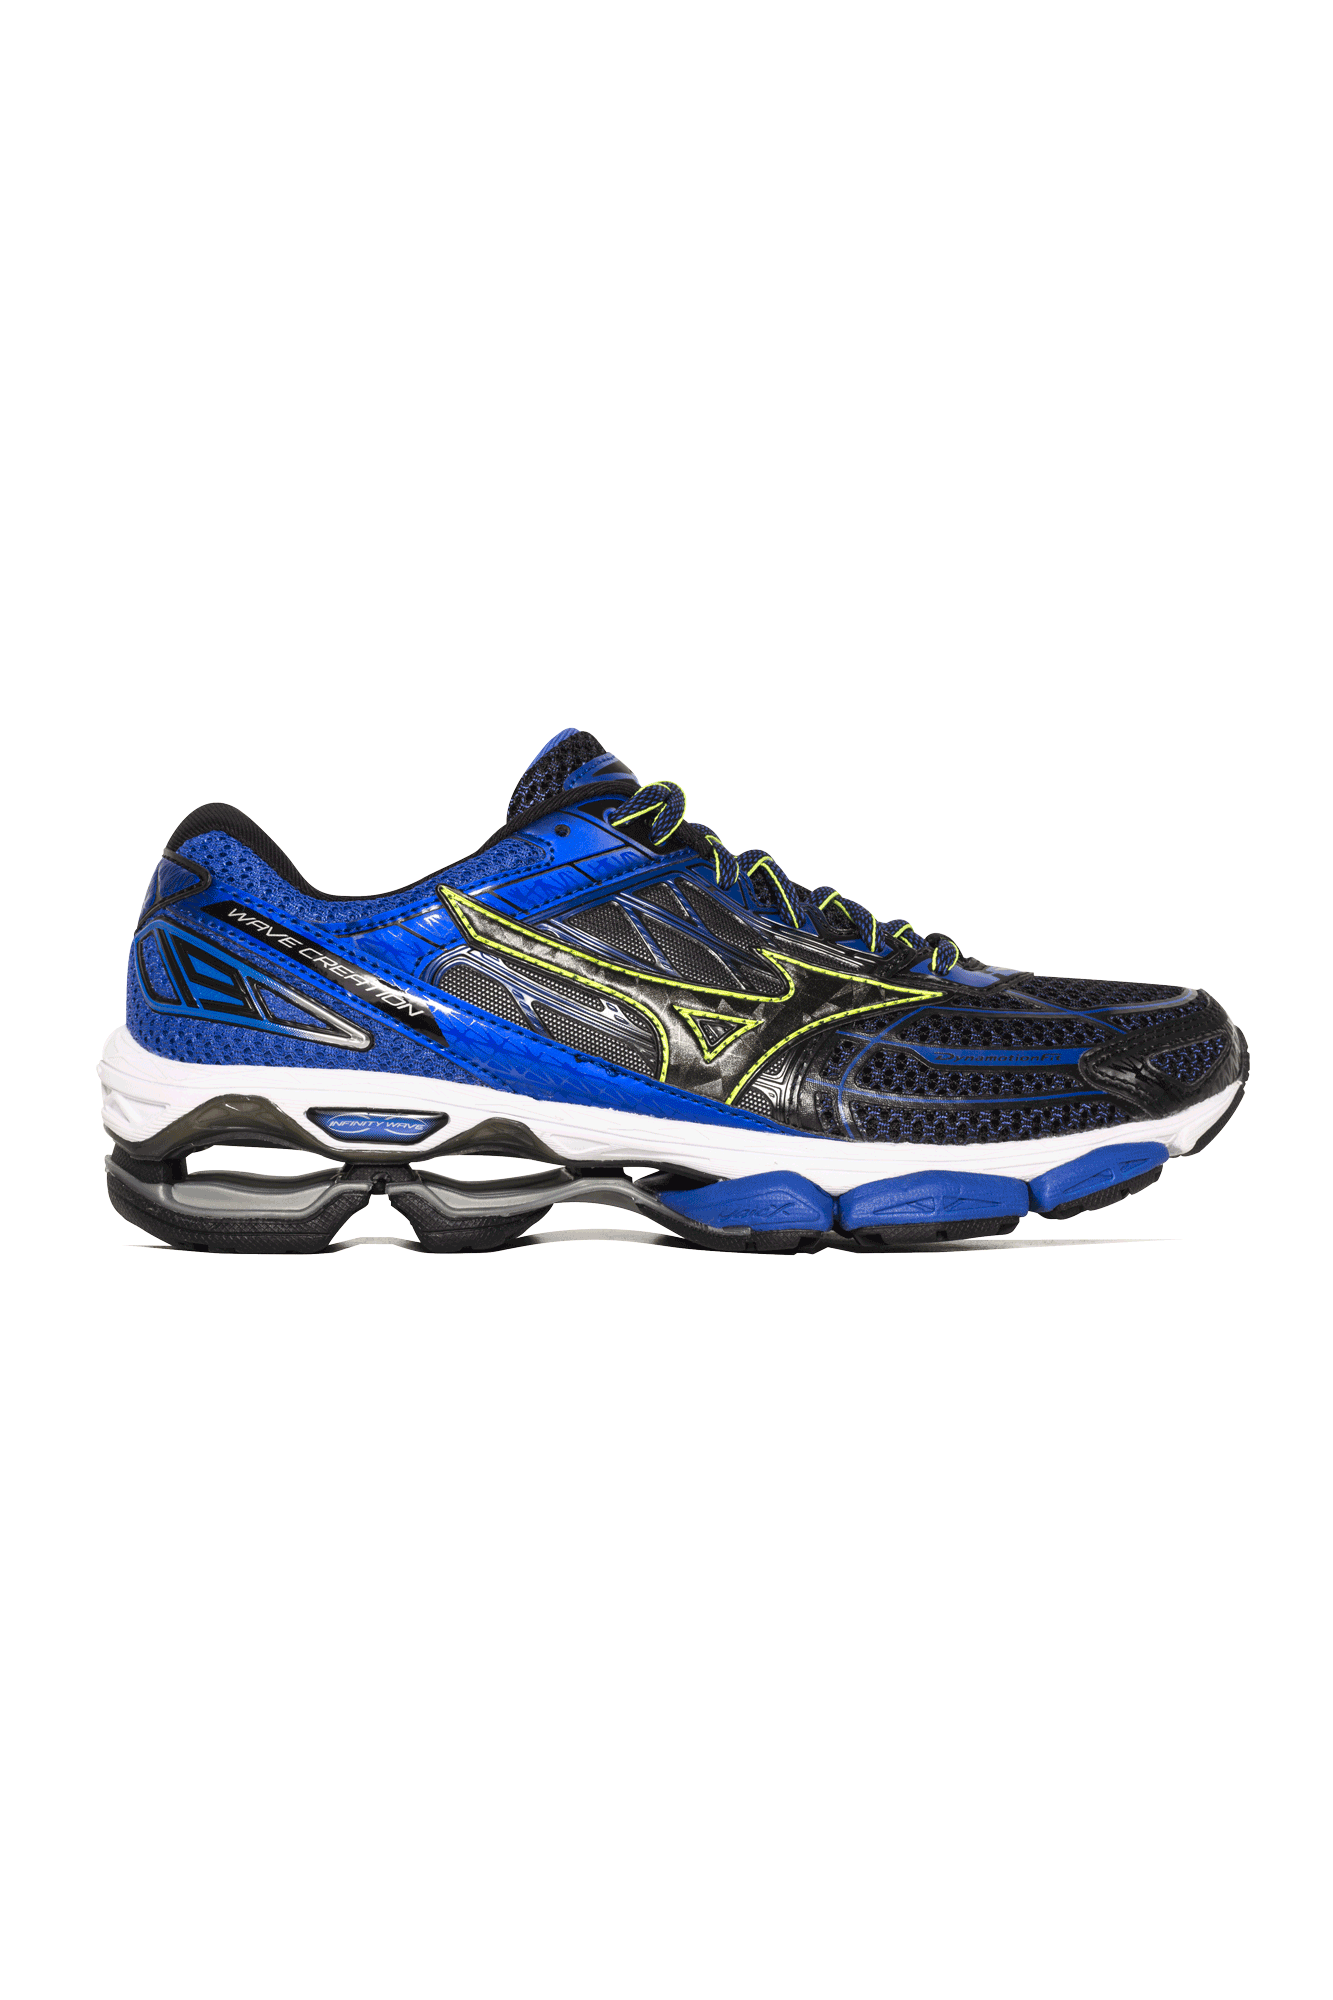 timeless design 09754 d7aac Mizuno Trainers Wave Creation Blue J1GC1701#000#C0007#8 ...